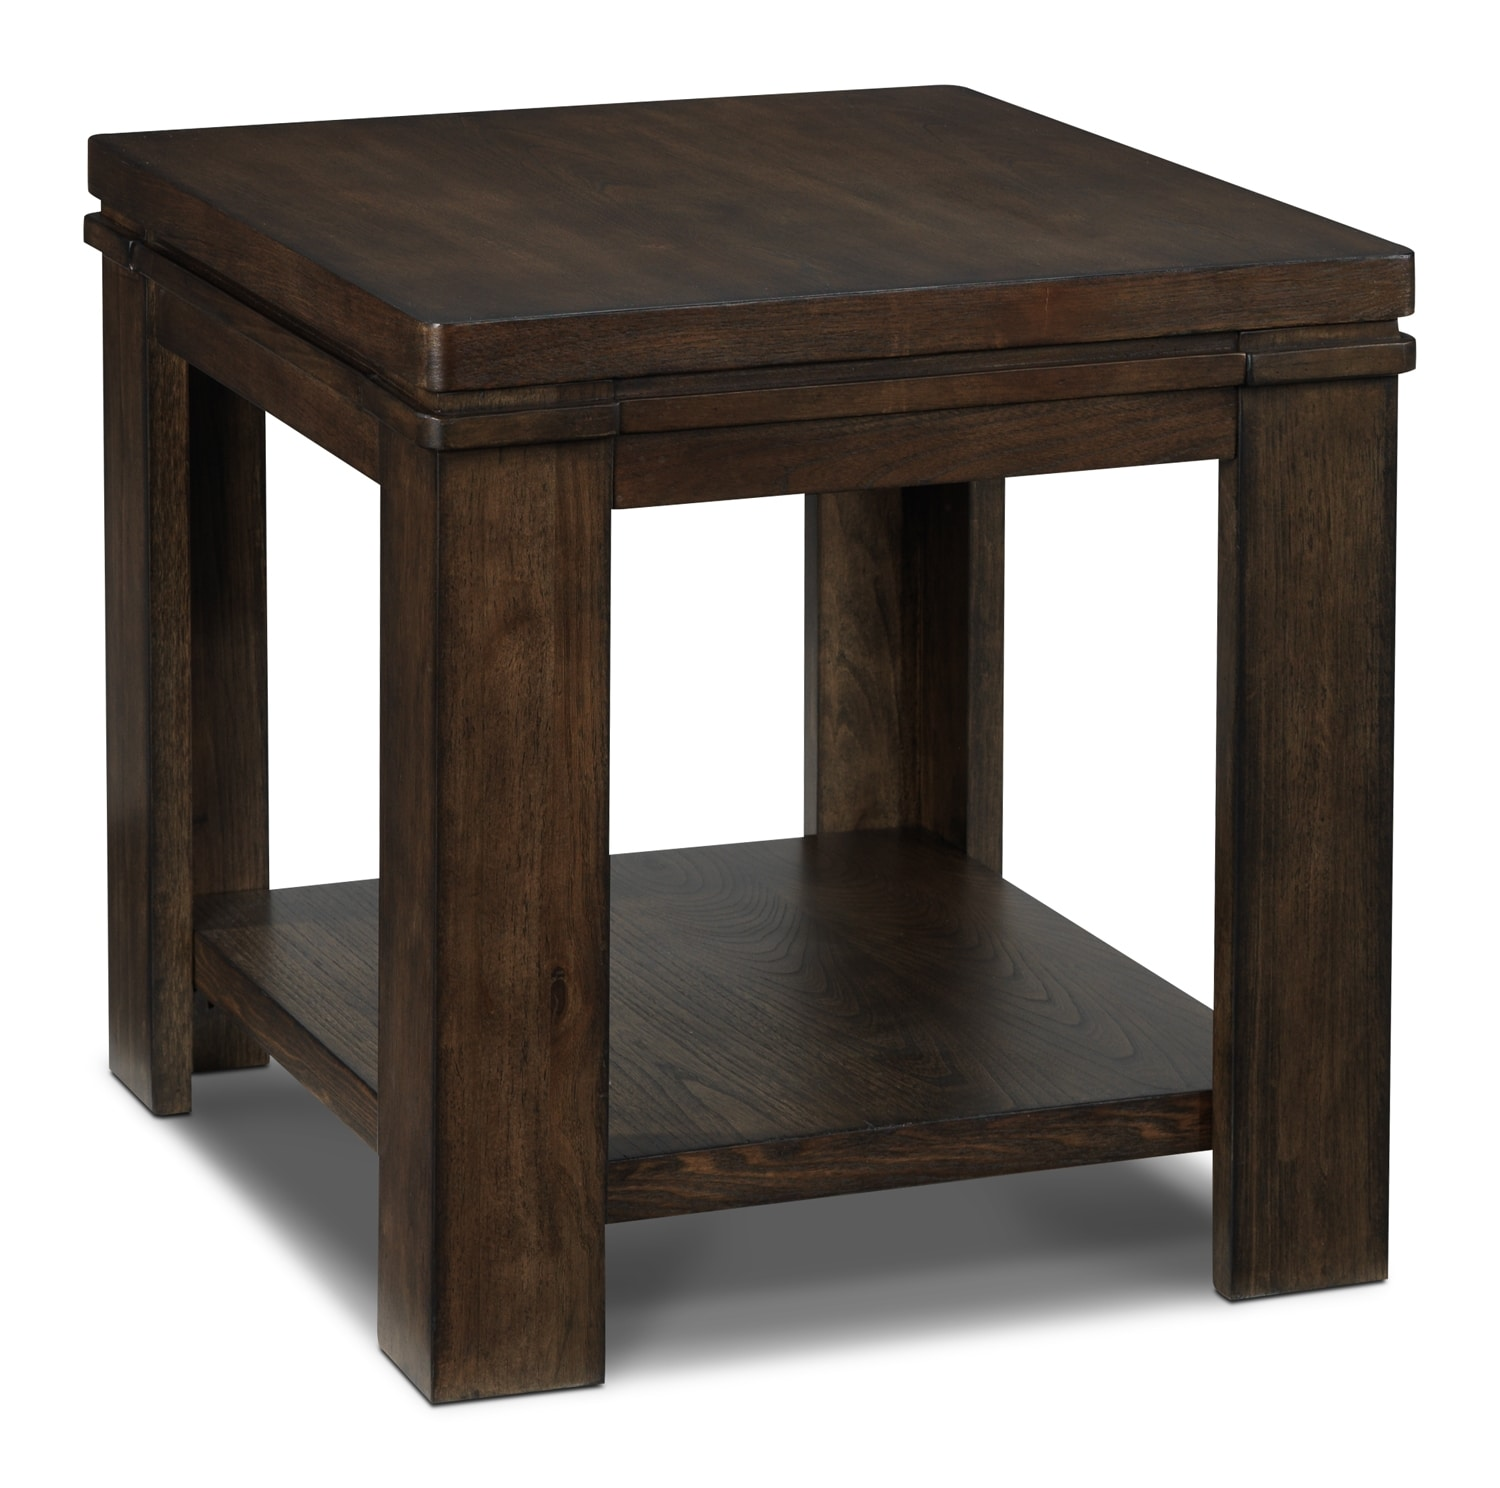 Harbridge End Table - Nutmeg